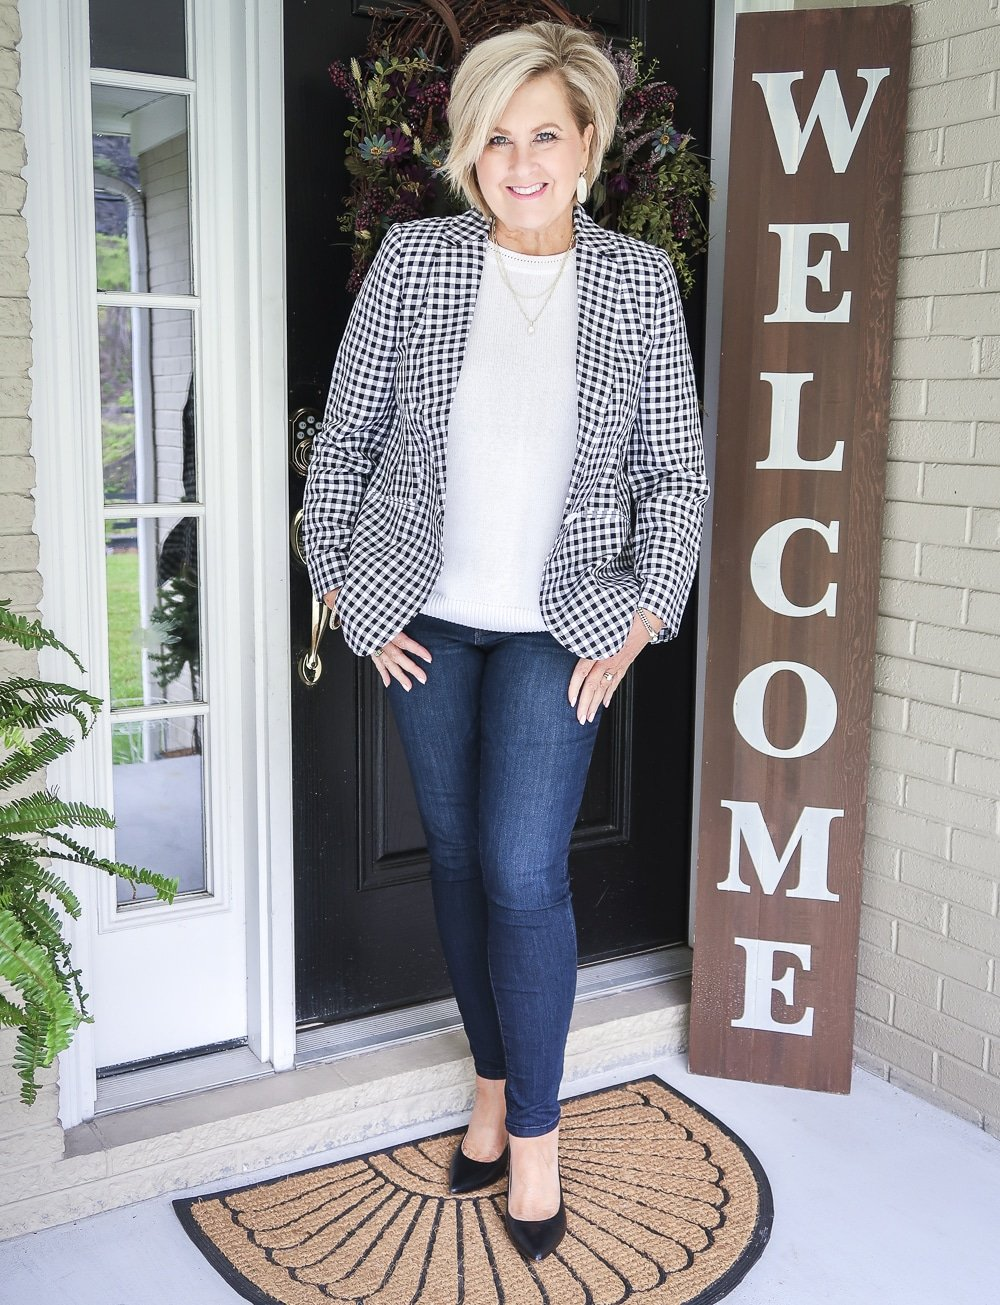 Fashion Blogger 50 Is Not Old is wearing a white sweater and a black and white gingham blazer with dark wash skinny jeans